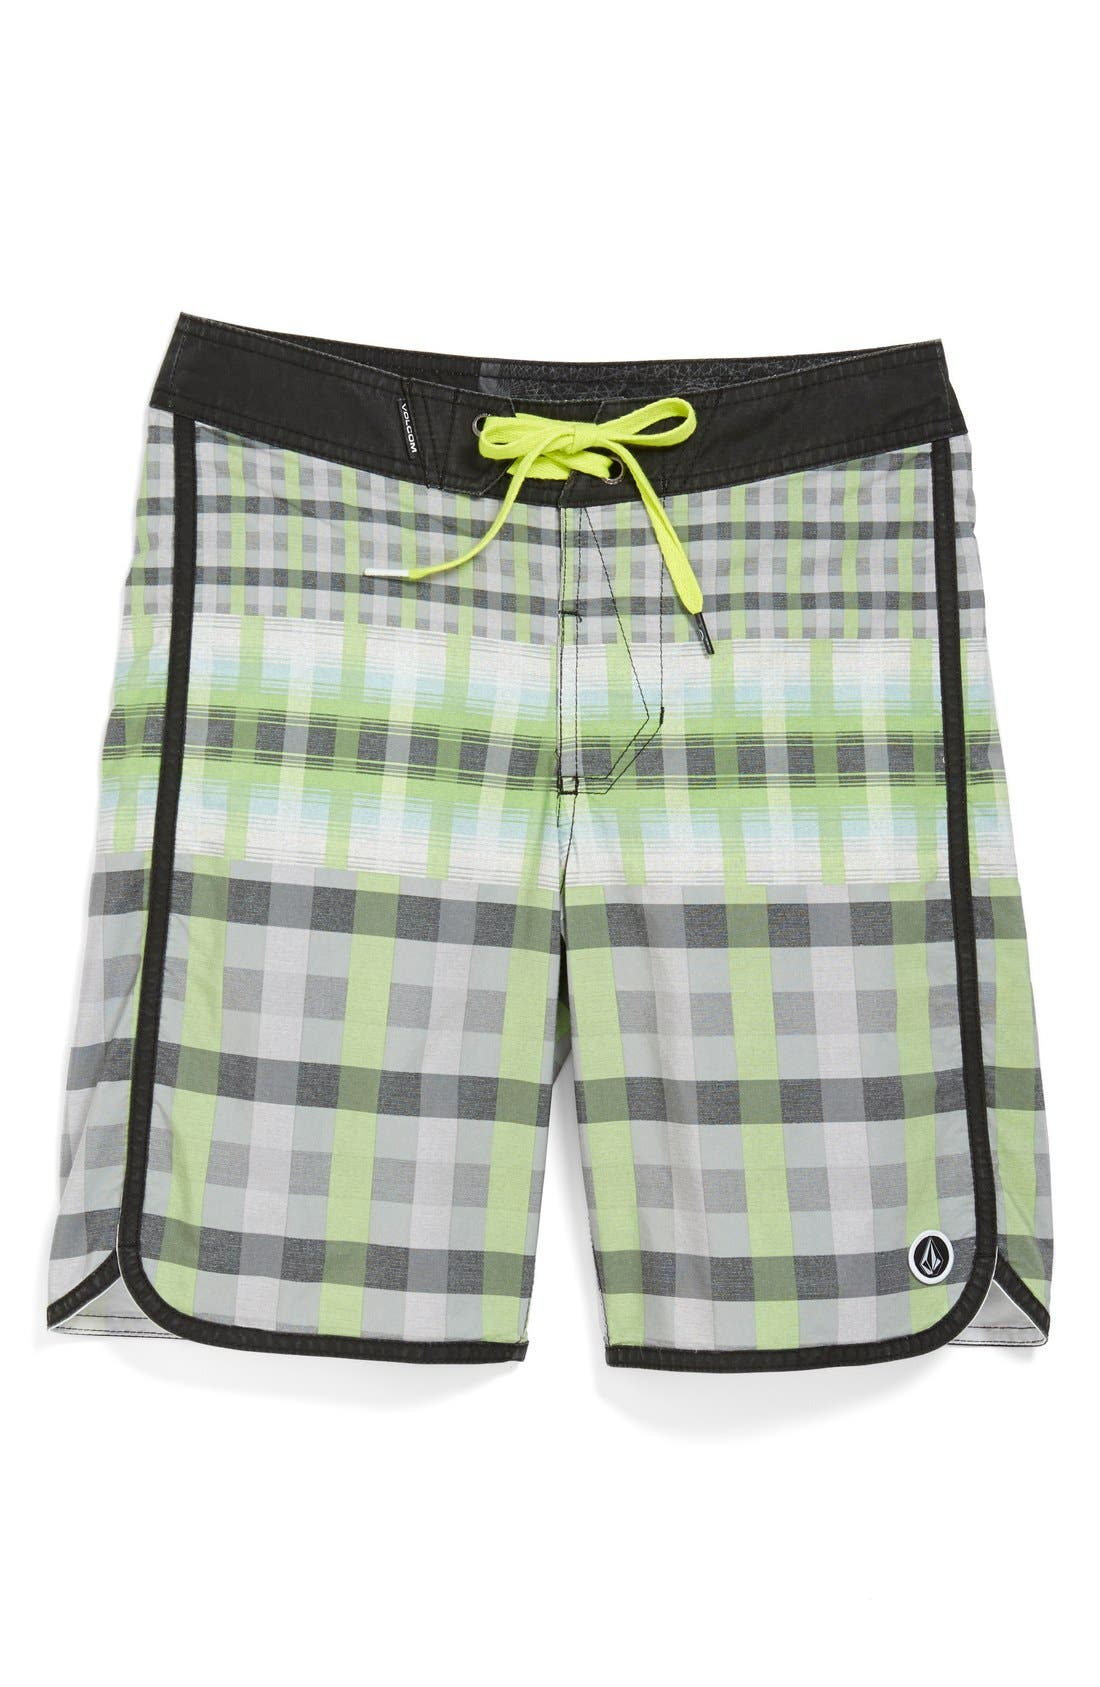 Alternate Image 1 Selected - Volcom 'Scallaid' Board Shorts (Big Boys)